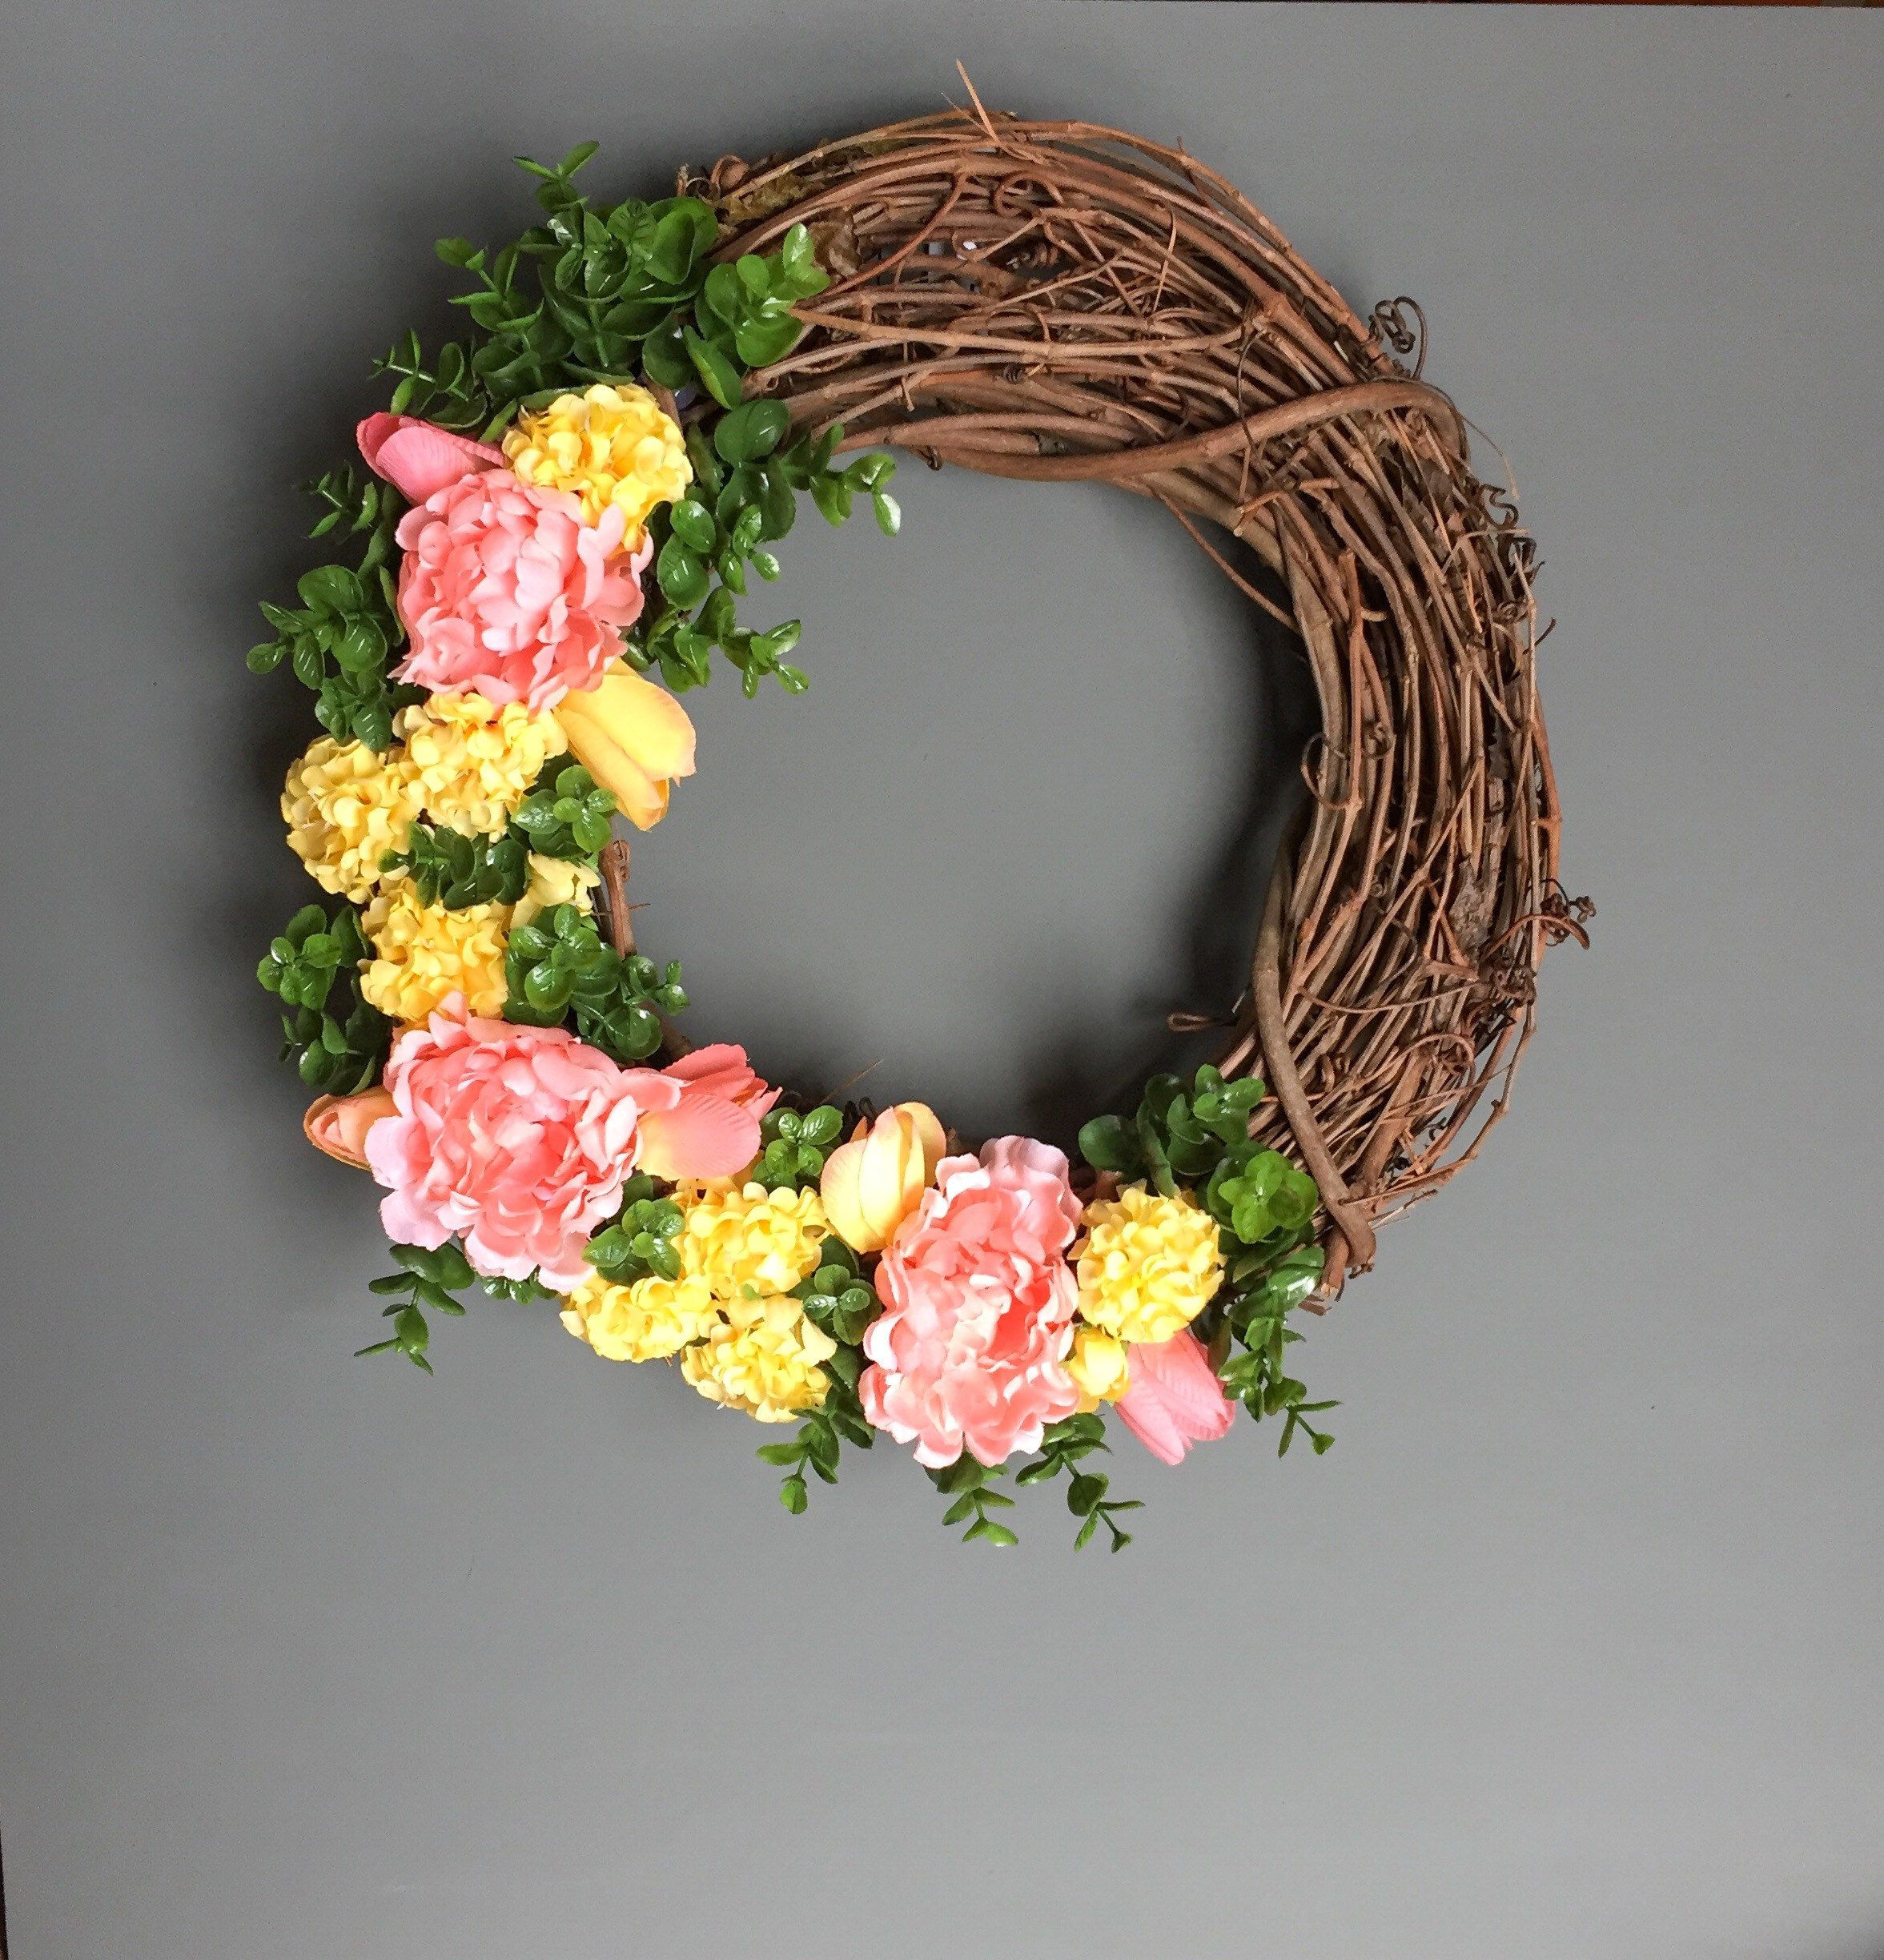 Photo of Spring Wreath for Front Door, Spring Door Wreath, Spring Grapevine Wreath, Rustic Spring Wreath, Peony Wreath, Housewarming Gift